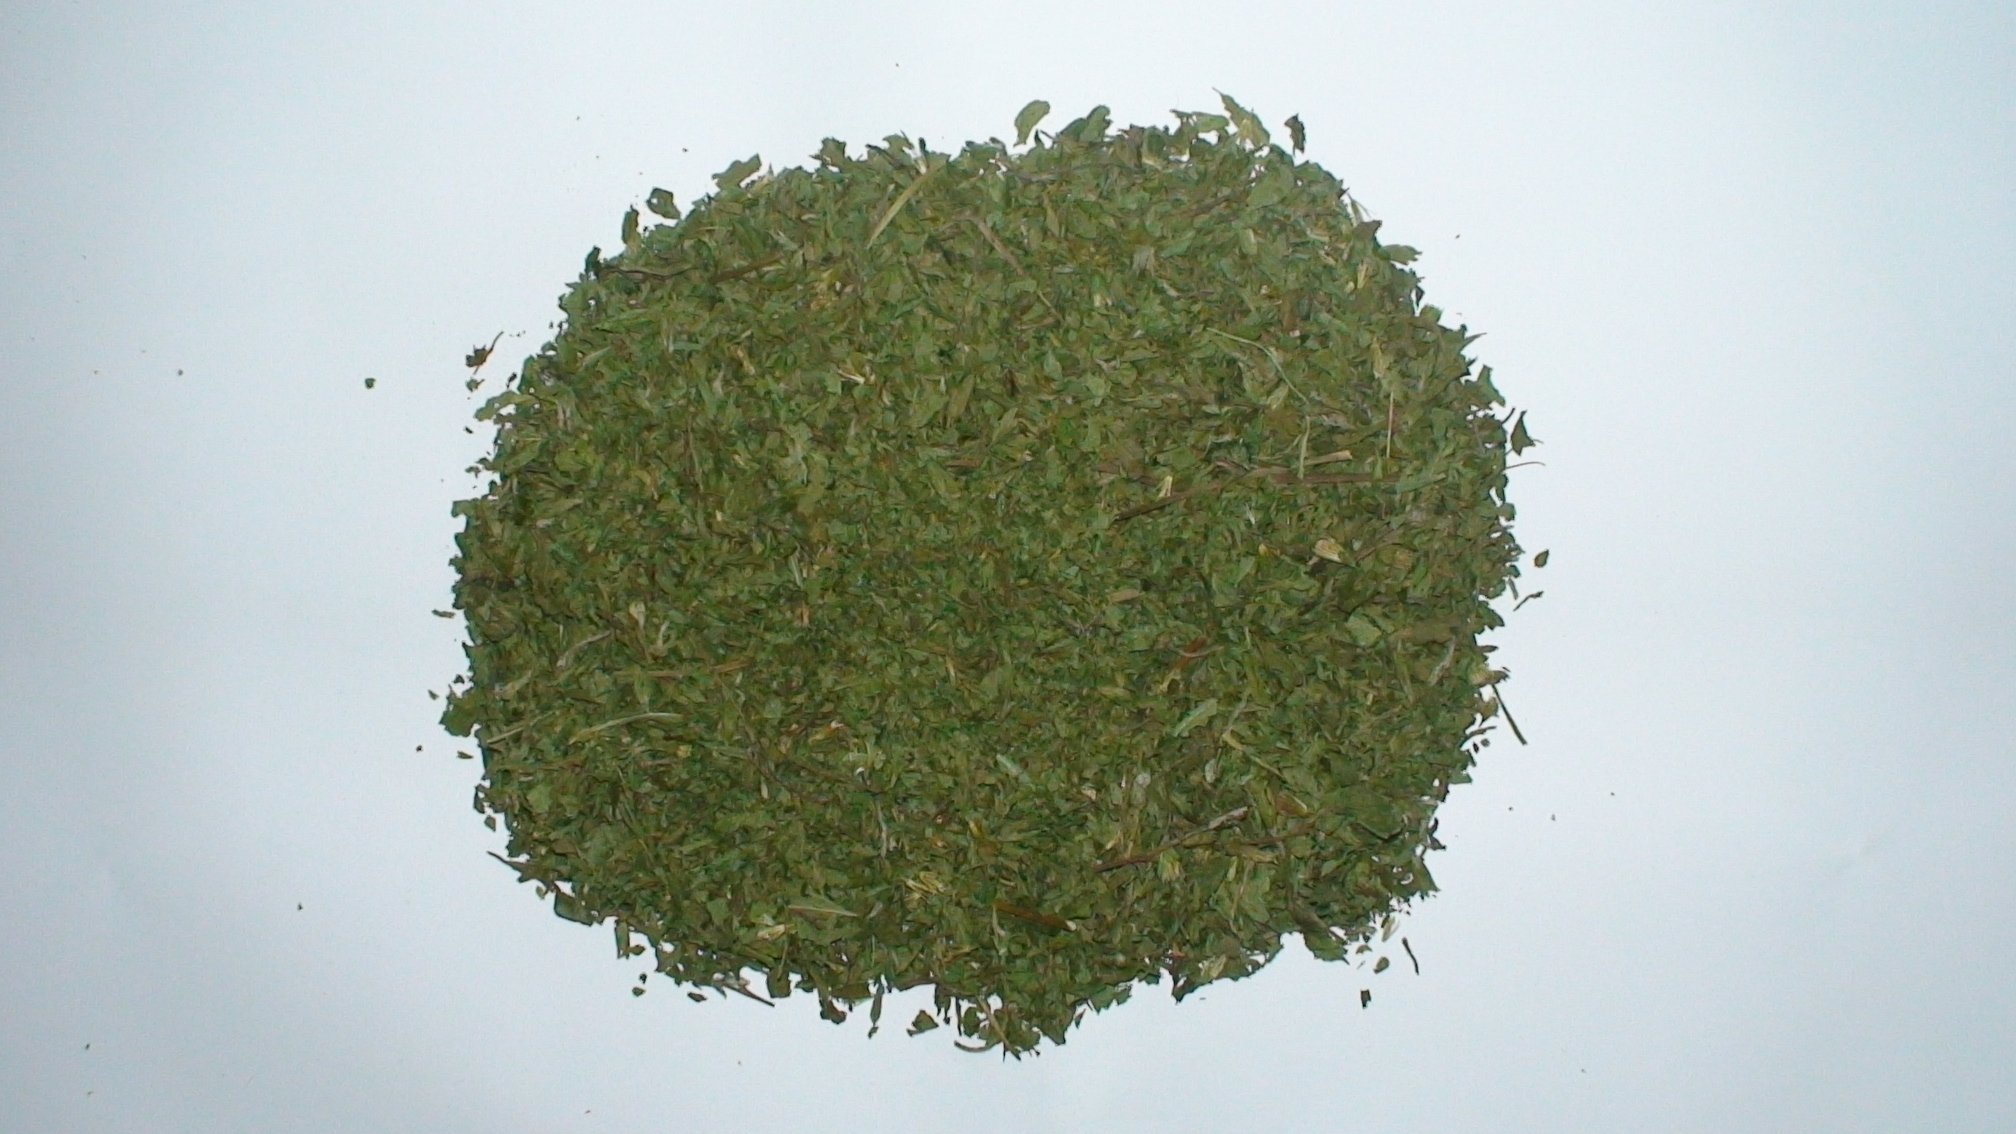 Dried stevia leaf-stems small, class 2